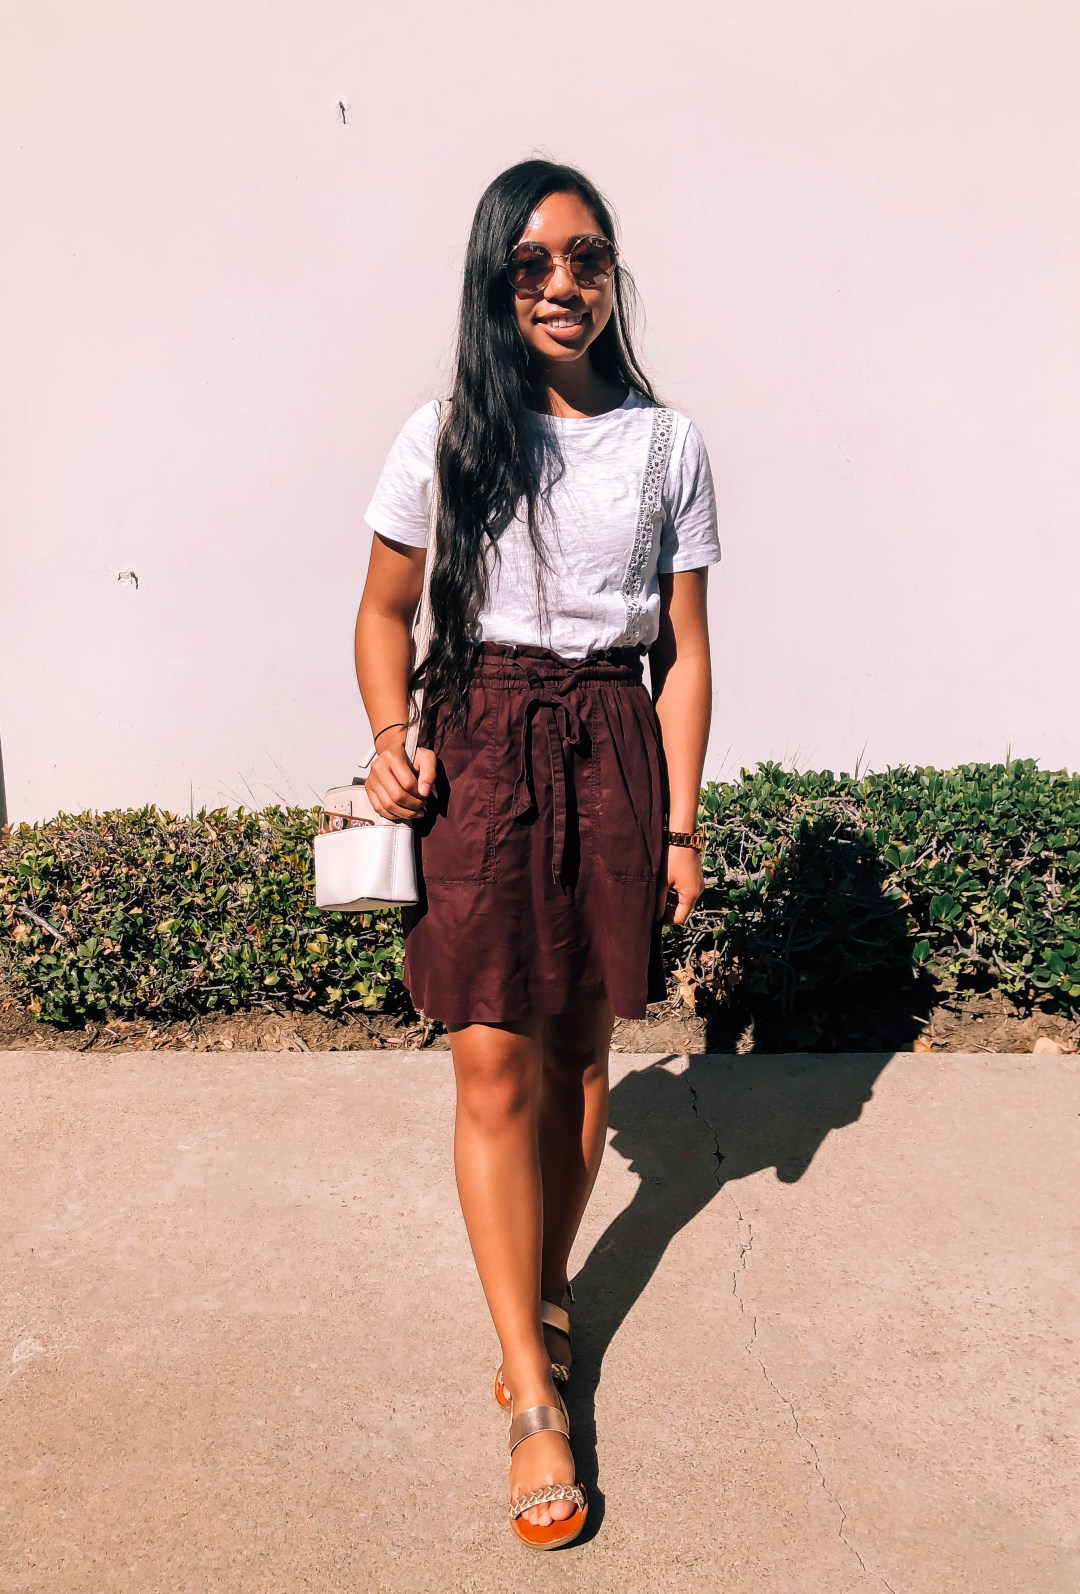 IMG 0503 - What I Wore This Week in College | Spring Outfits for School